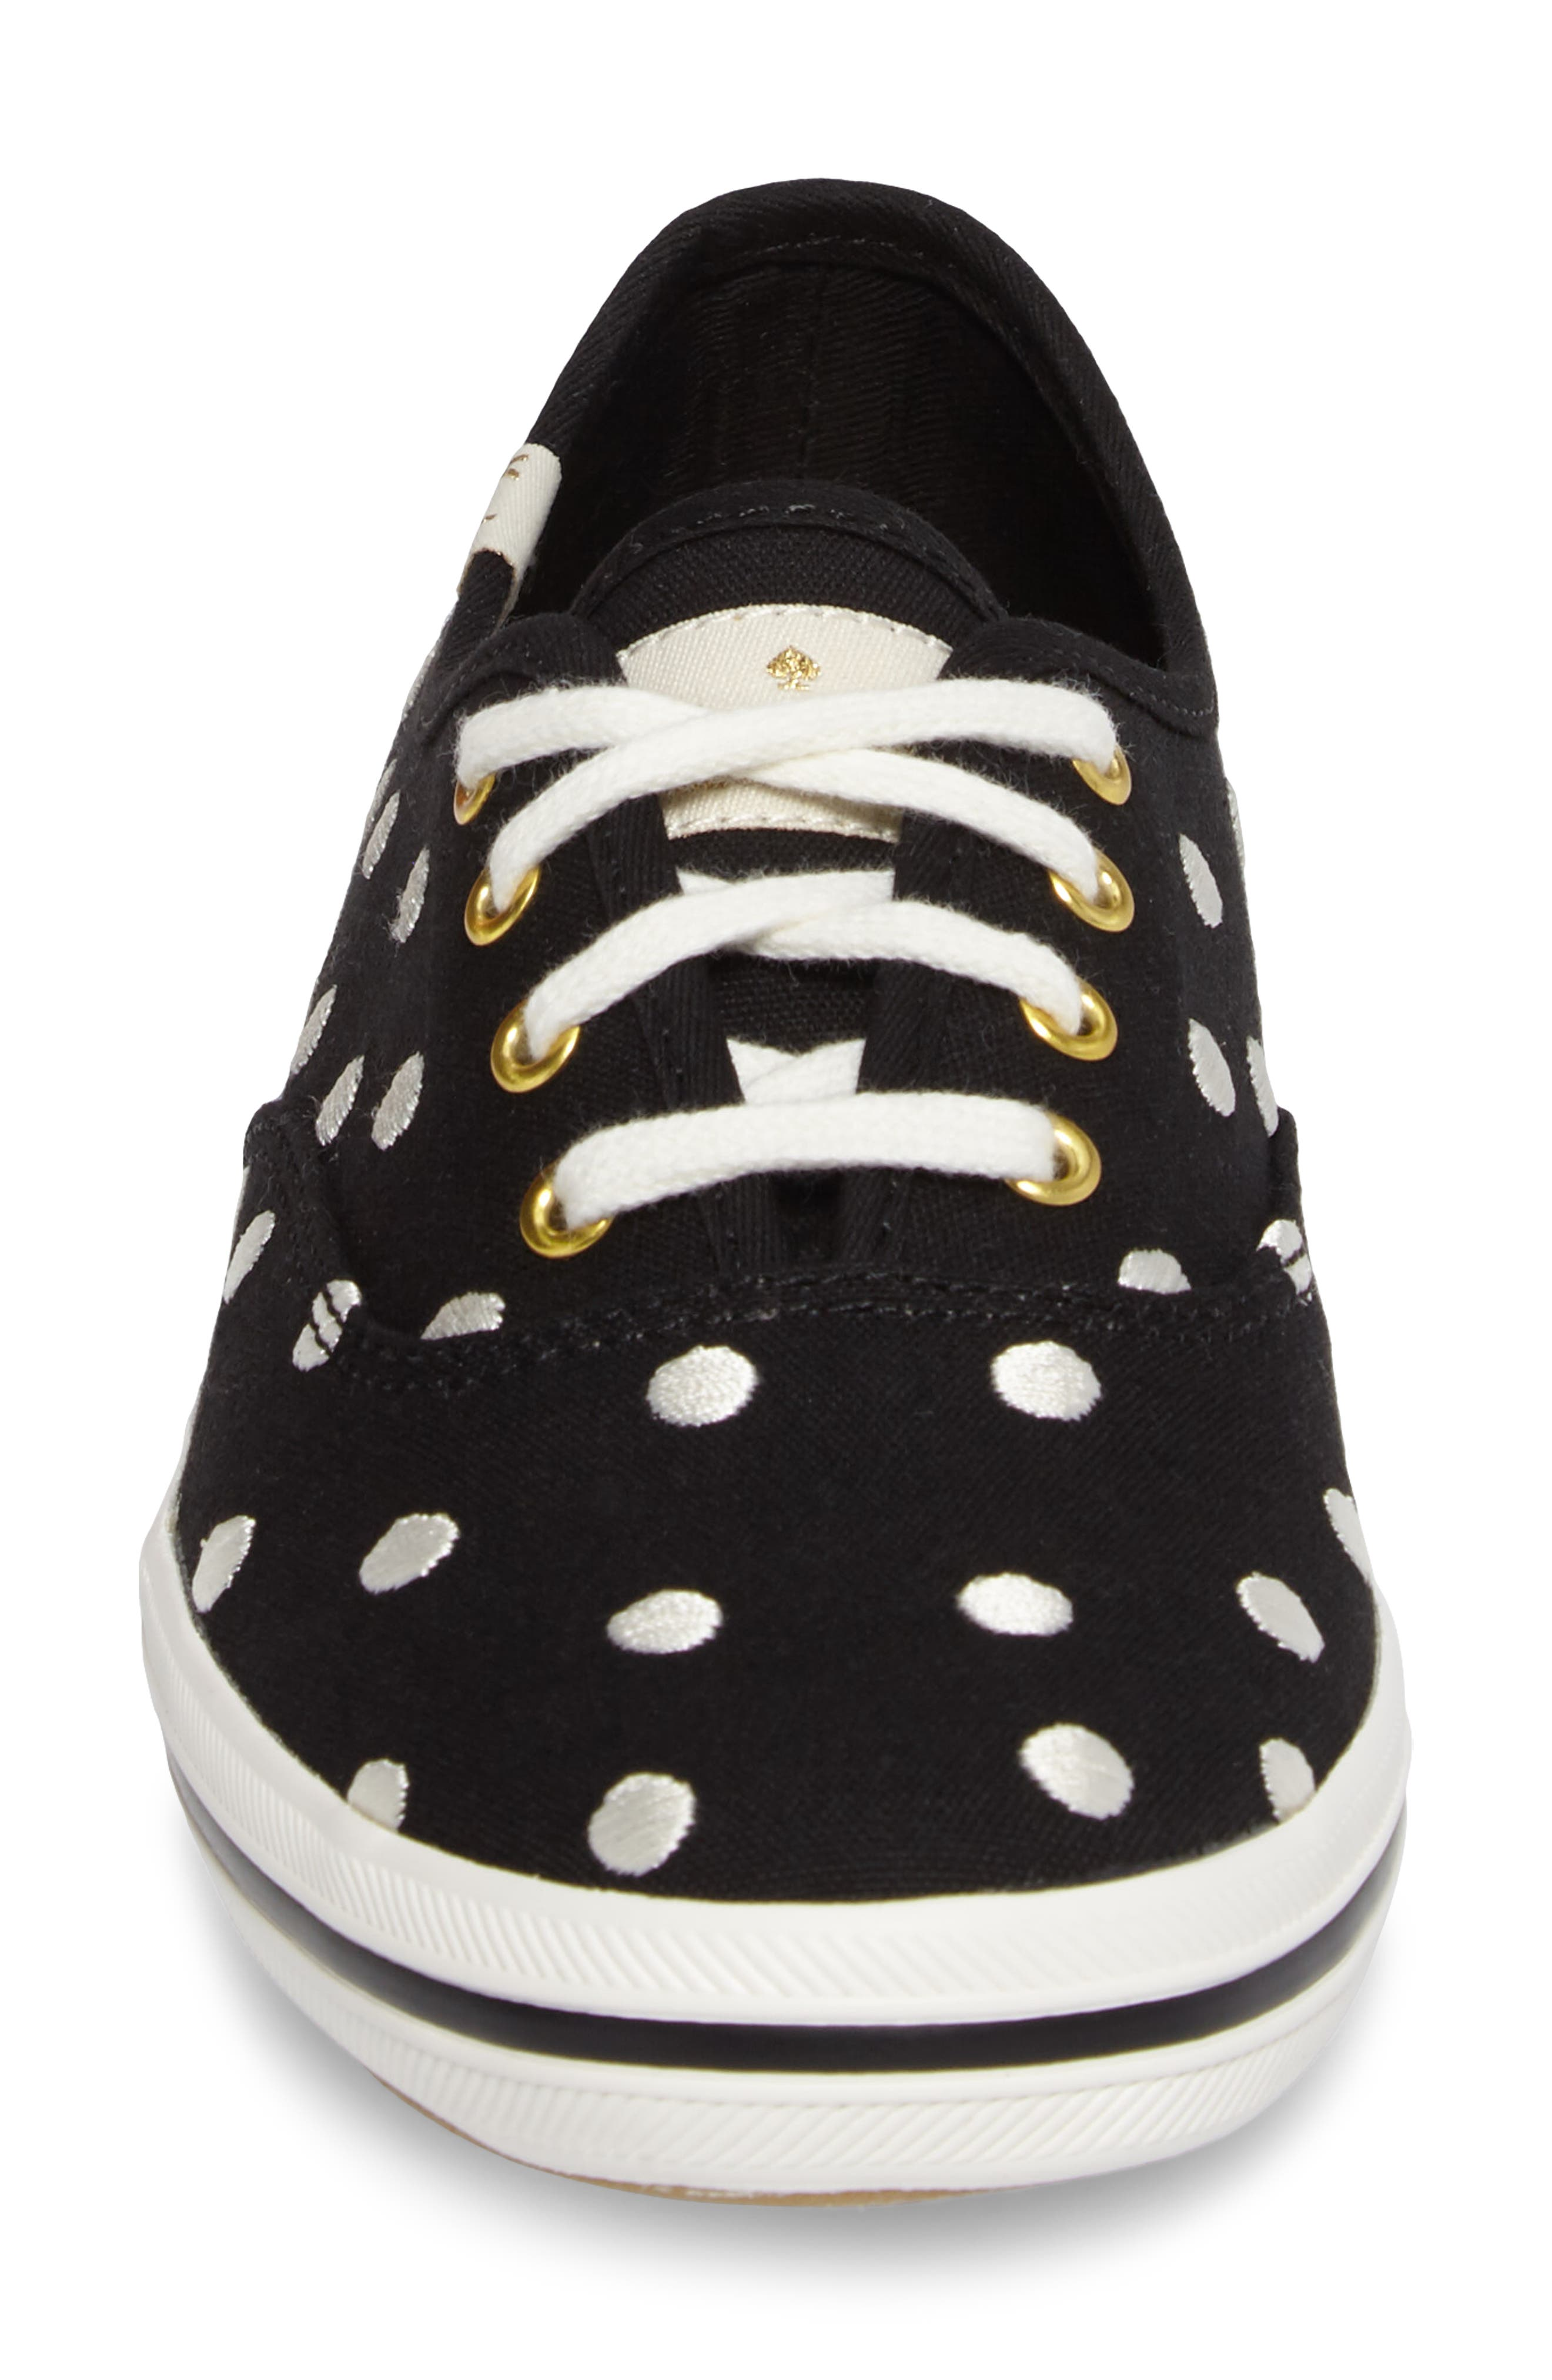 Keds<sup>®</sup> x kate spade new york champion sneaker,                             Alternate thumbnail 13, color,